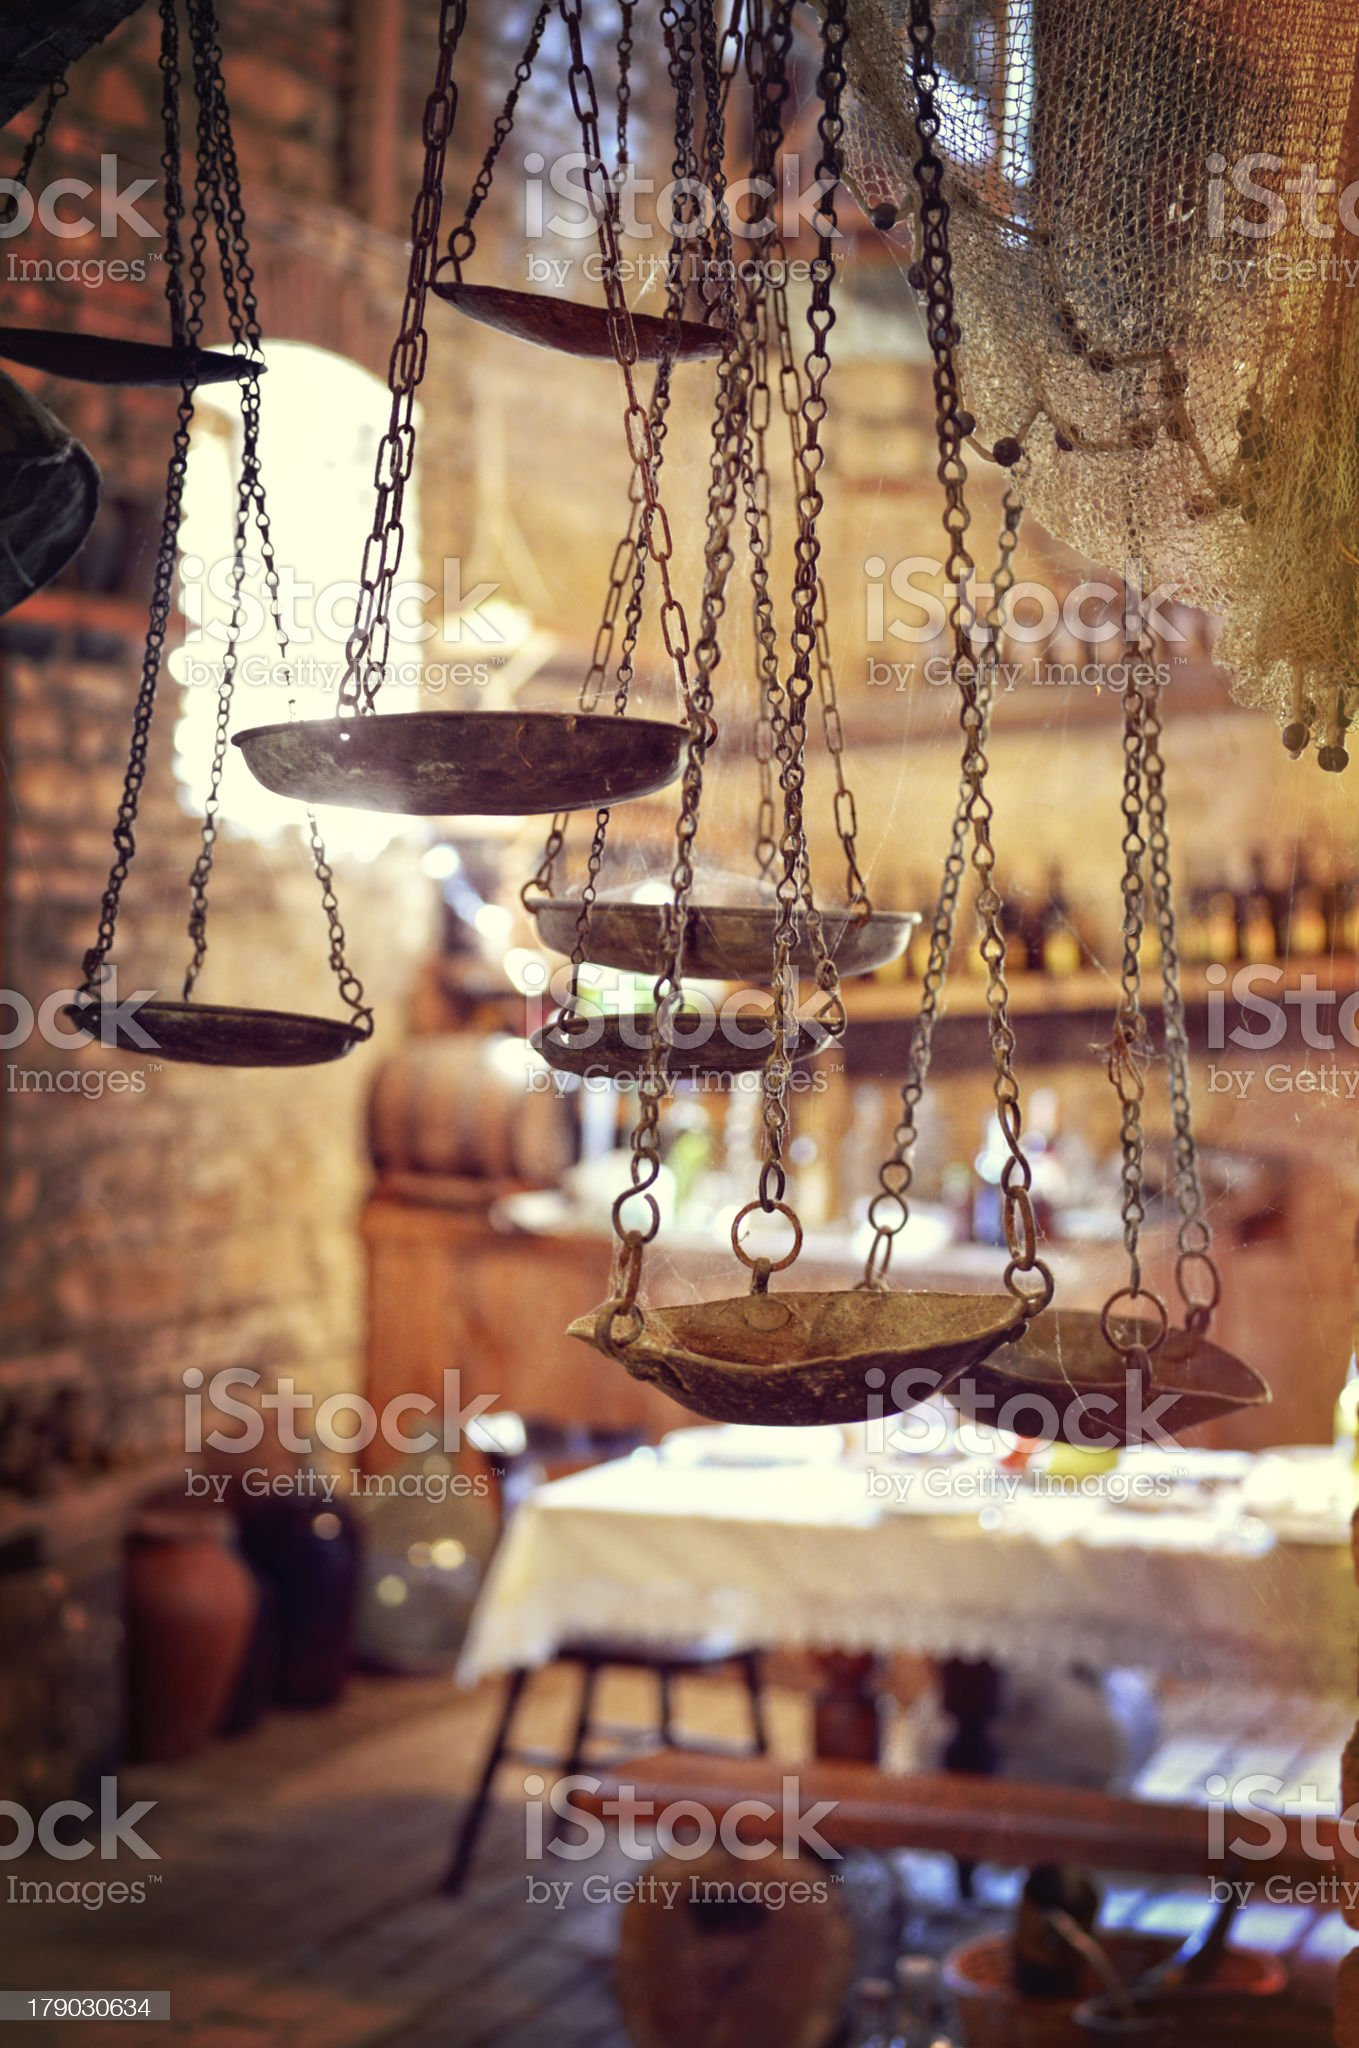 Ancient scales against vintage utensils royalty-free stock photo